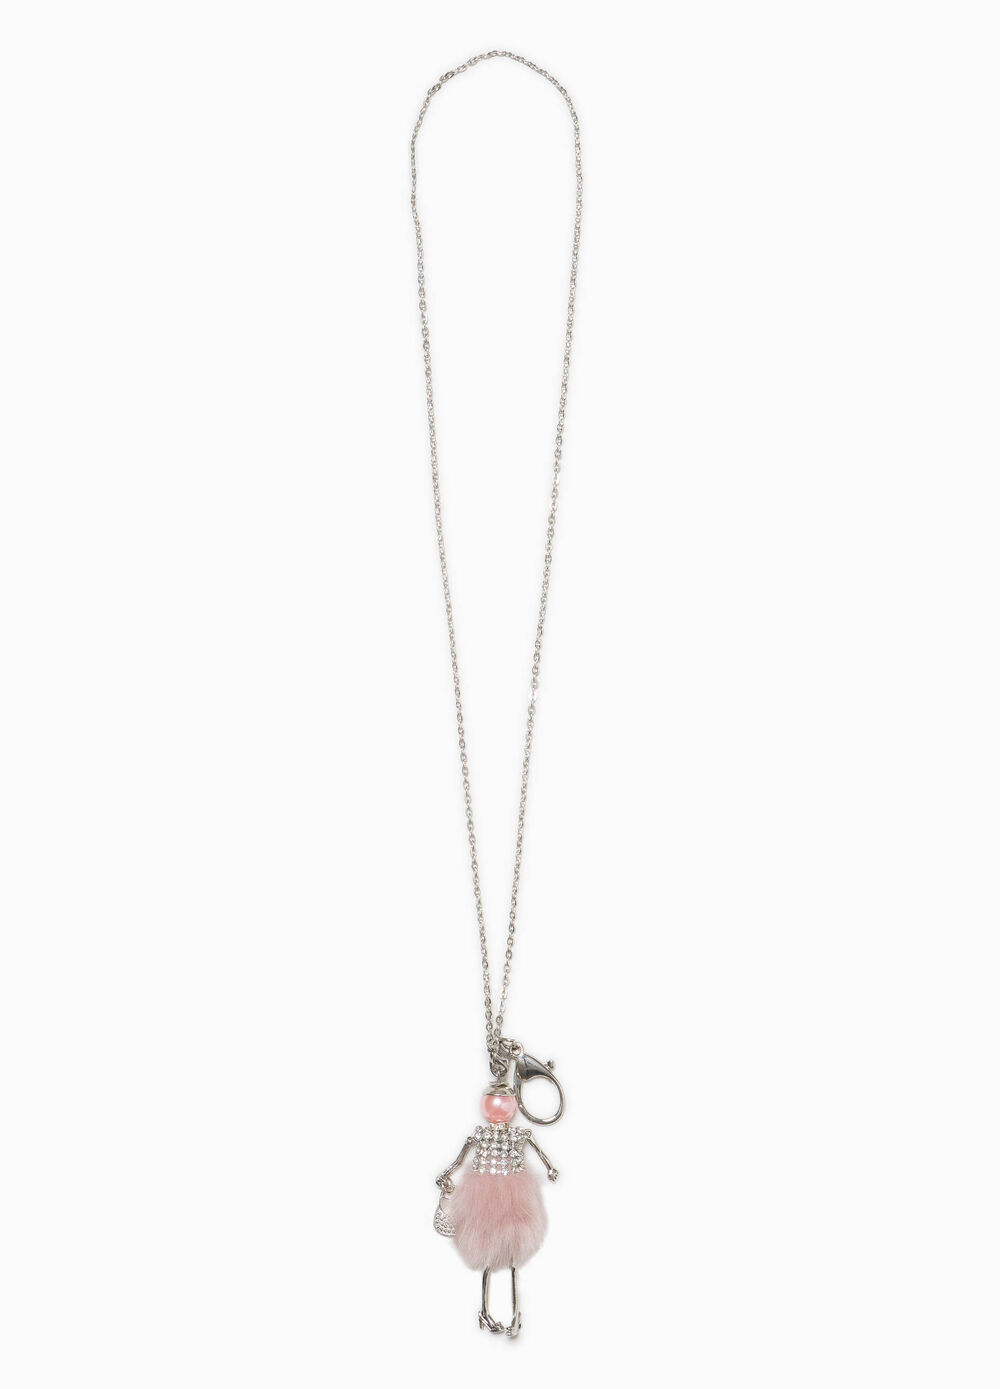 Iron necklace with small doll pendant